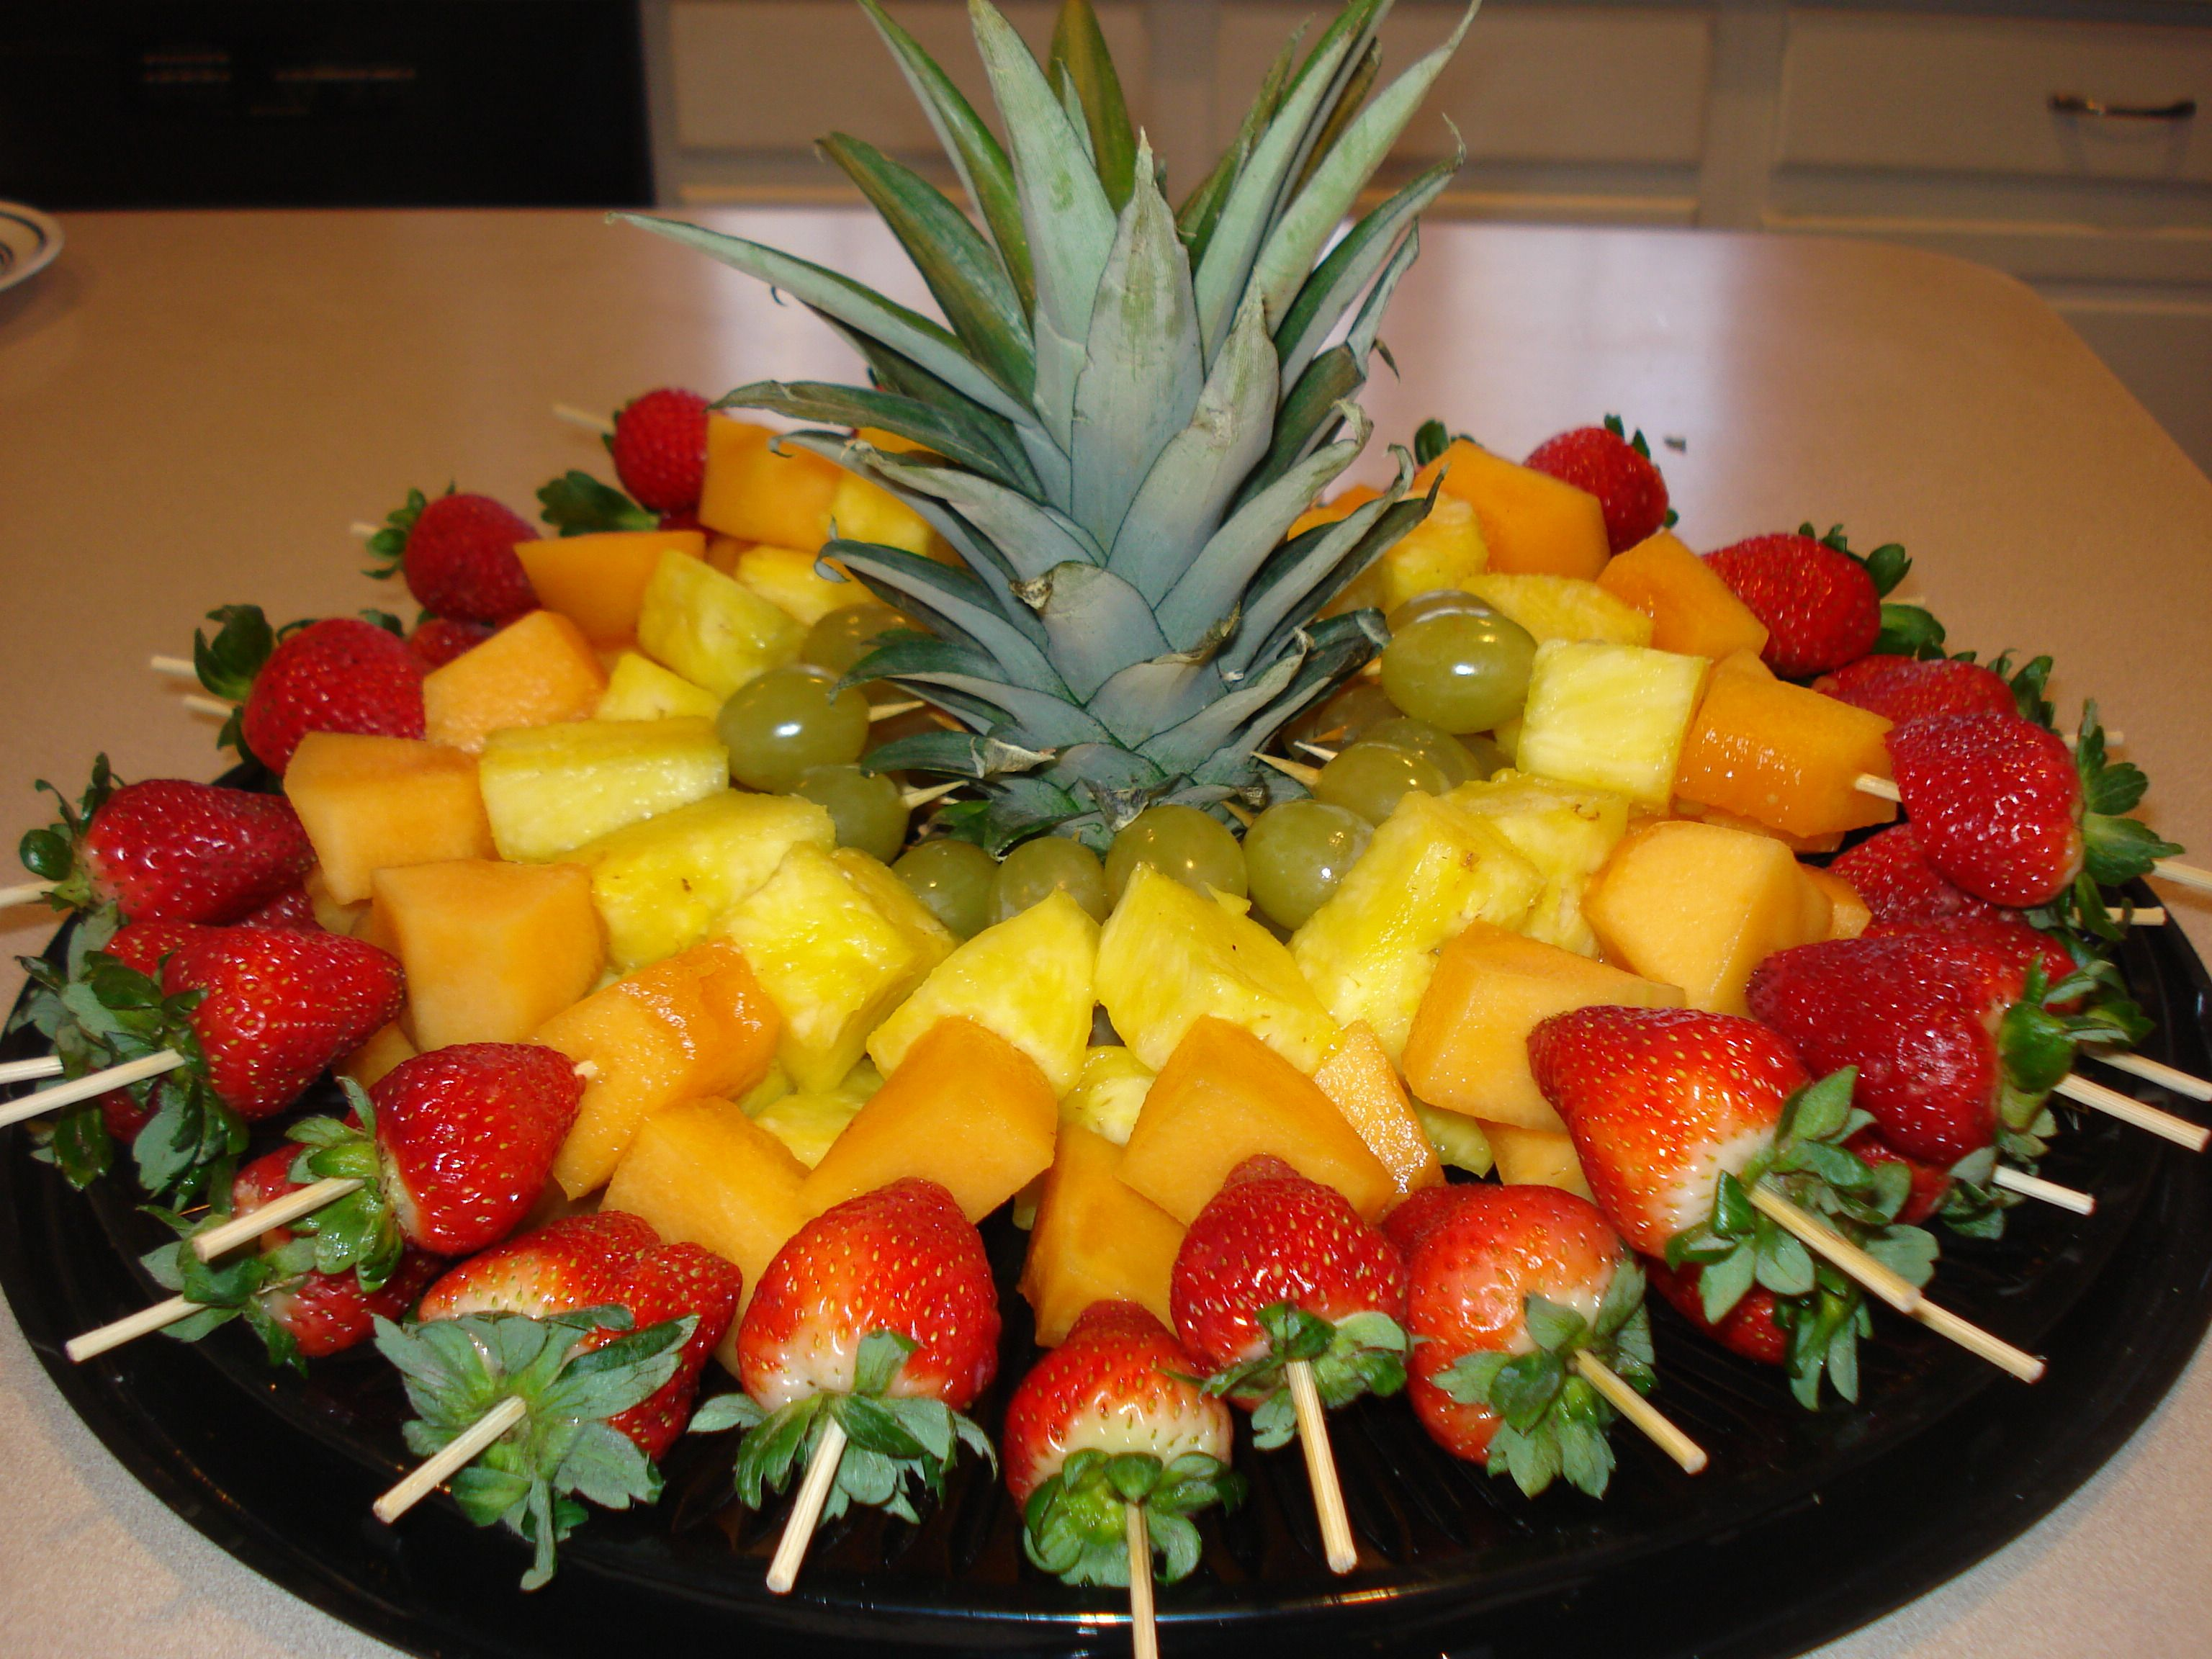 Obstplatte Kinder Fruit Skewers For A Party Cut Top Off Of Pineapple To